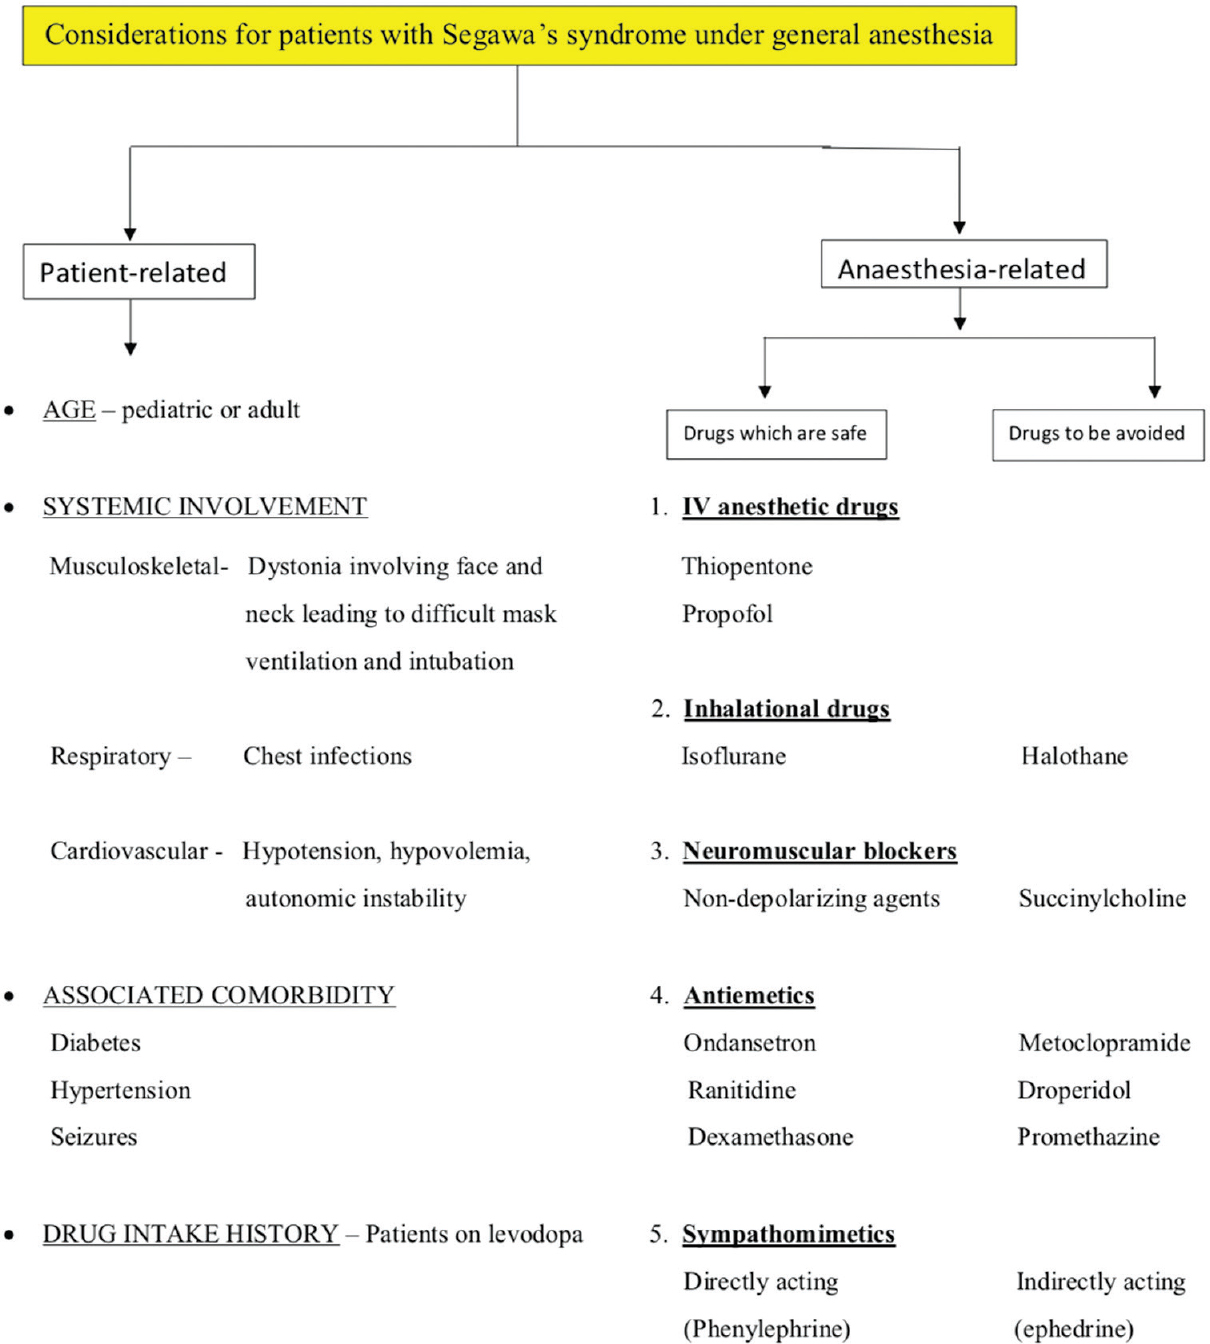 Figure 1: Anesthetic considerations in Segawa's syndrome patients under general anesthesia